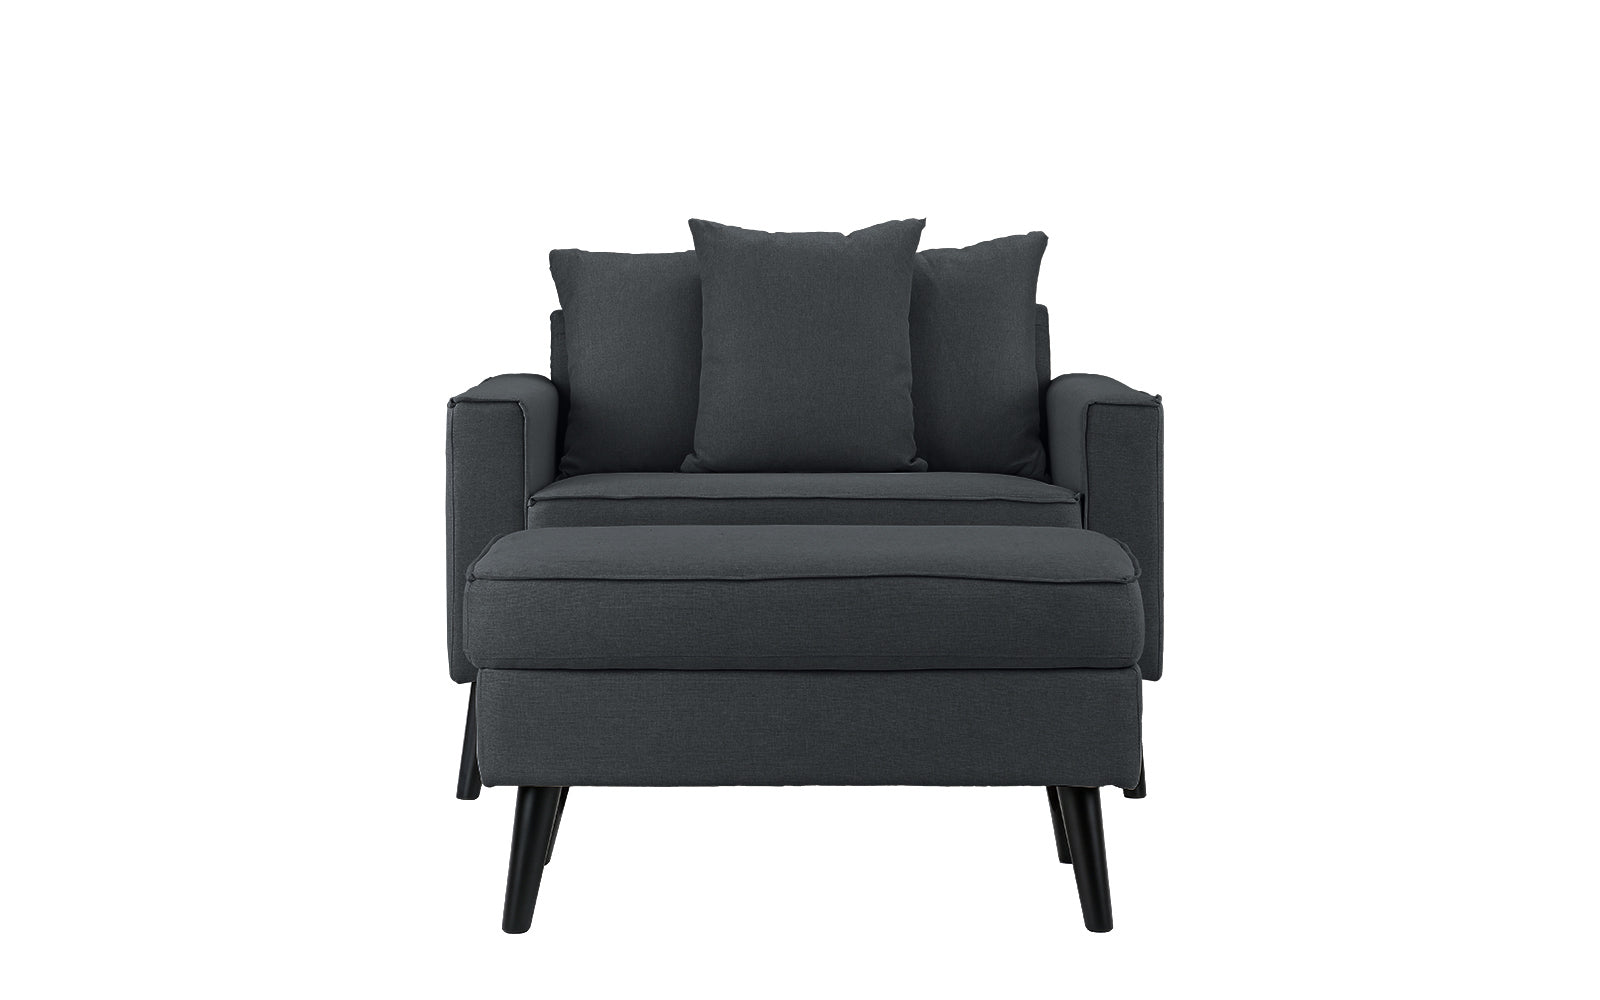 Ordinaire Robertson Modern Accent Chair With Storage Footrest